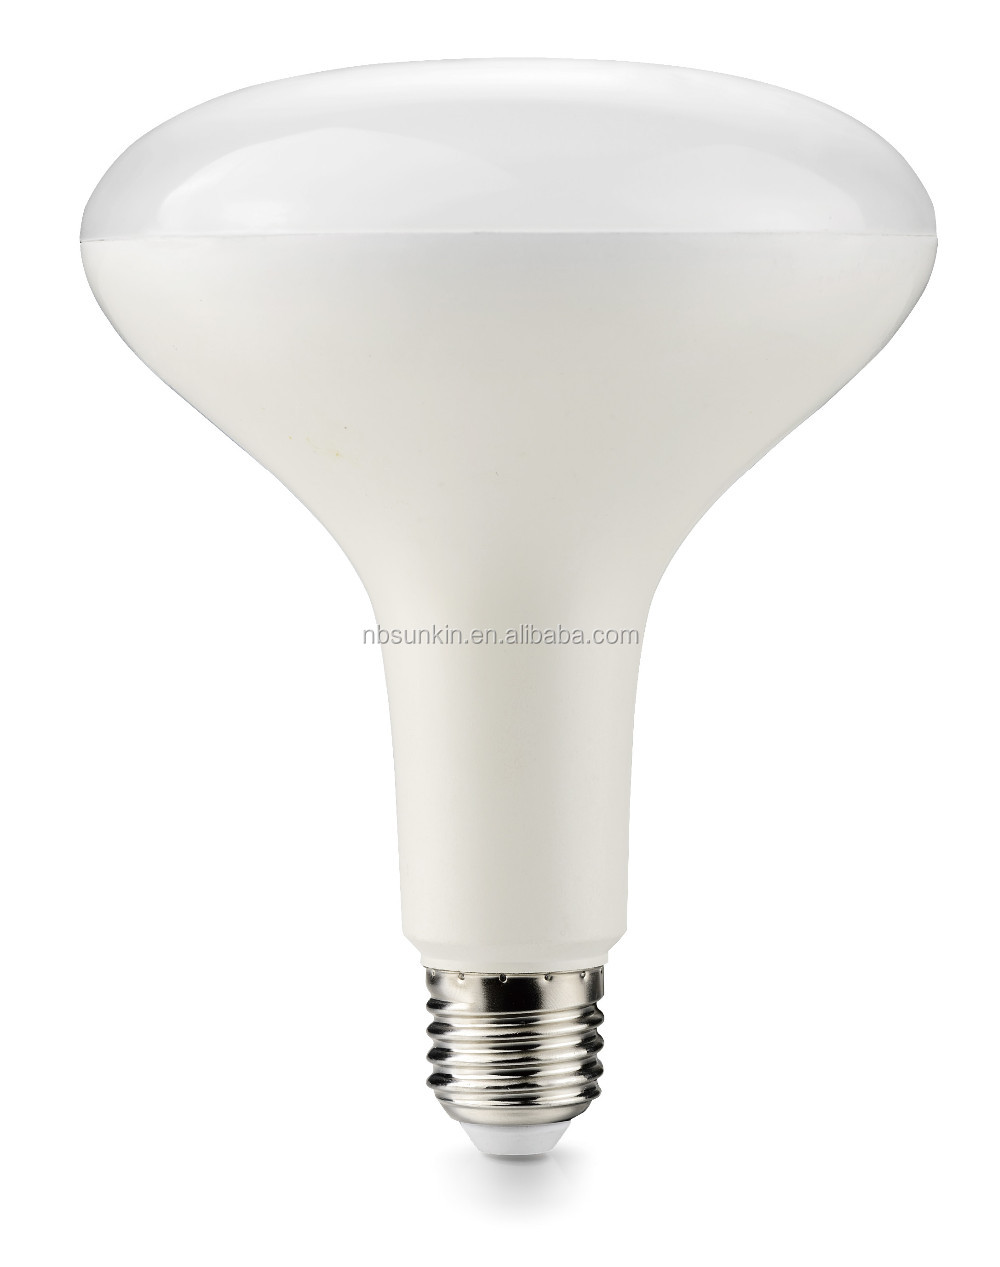 CE RoHS approved cheapest raw material R50 led bulb light,E14 led bulb lamp